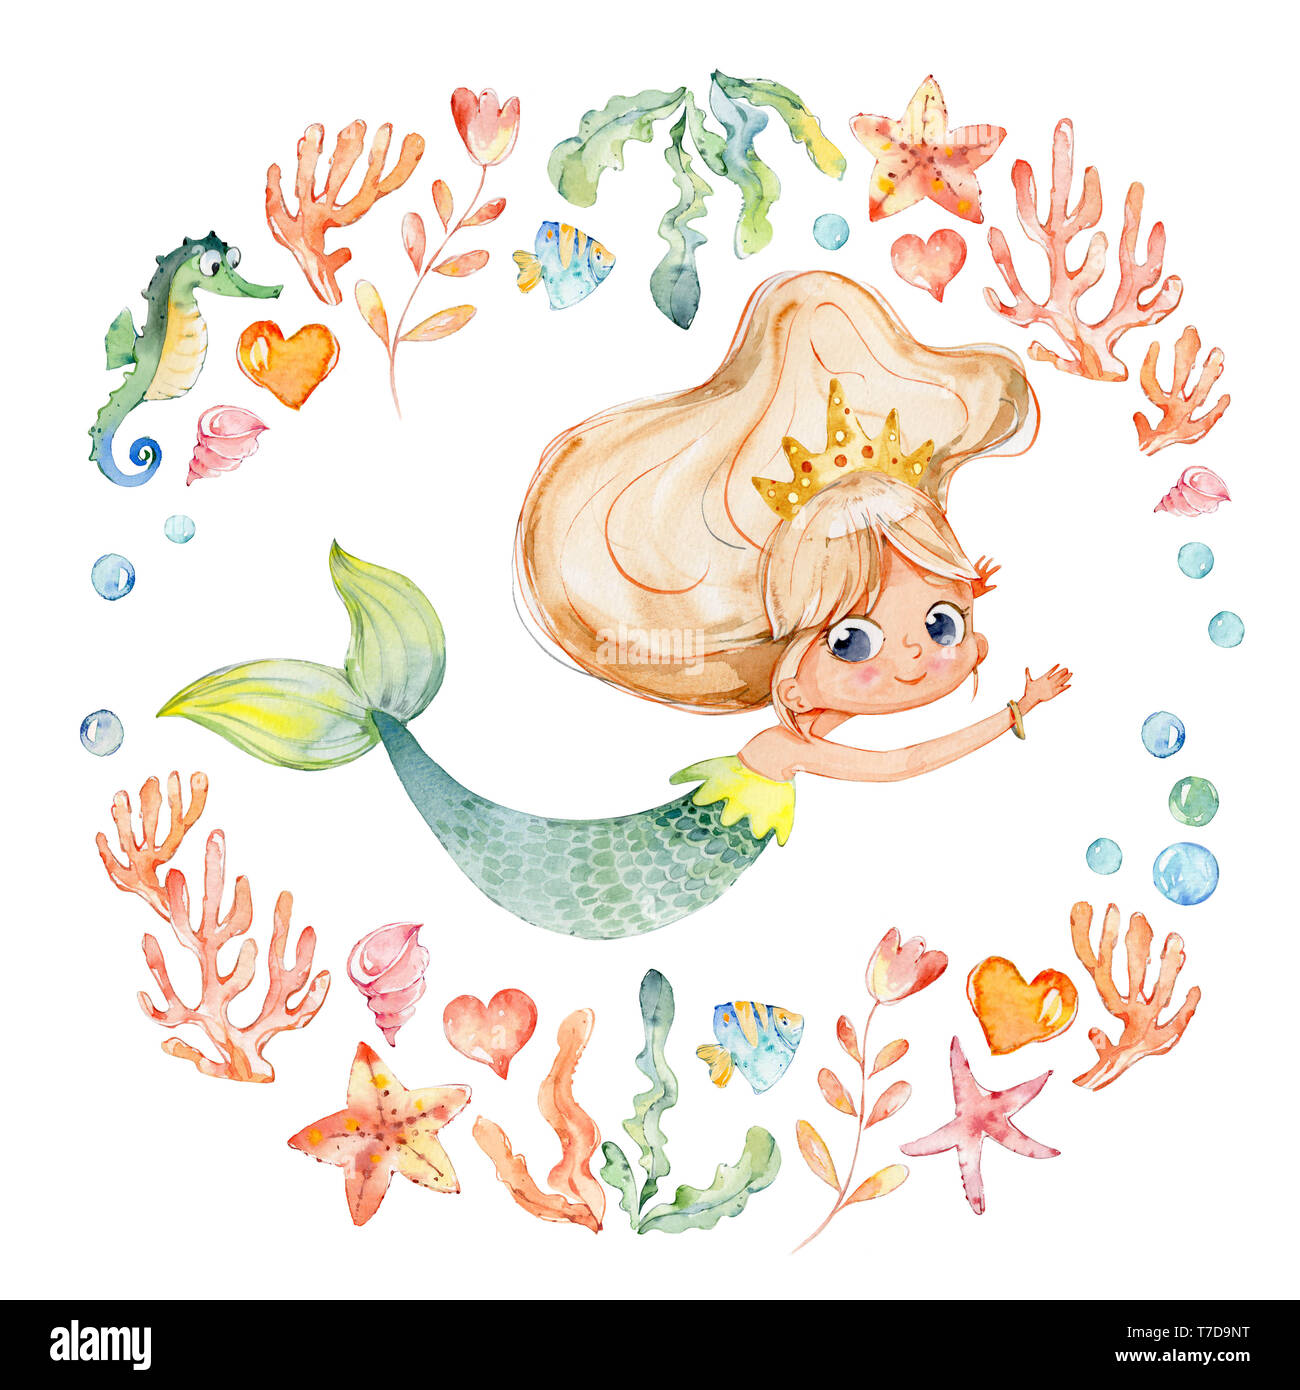 Mermaid Watercolor Surrounded By Frame Of Sea Elements Sea Horse Corals Bubbles Seashells Anchor Seaweeds Ocean Kit Young Underwater Woman Nym Stock Photo Alamy